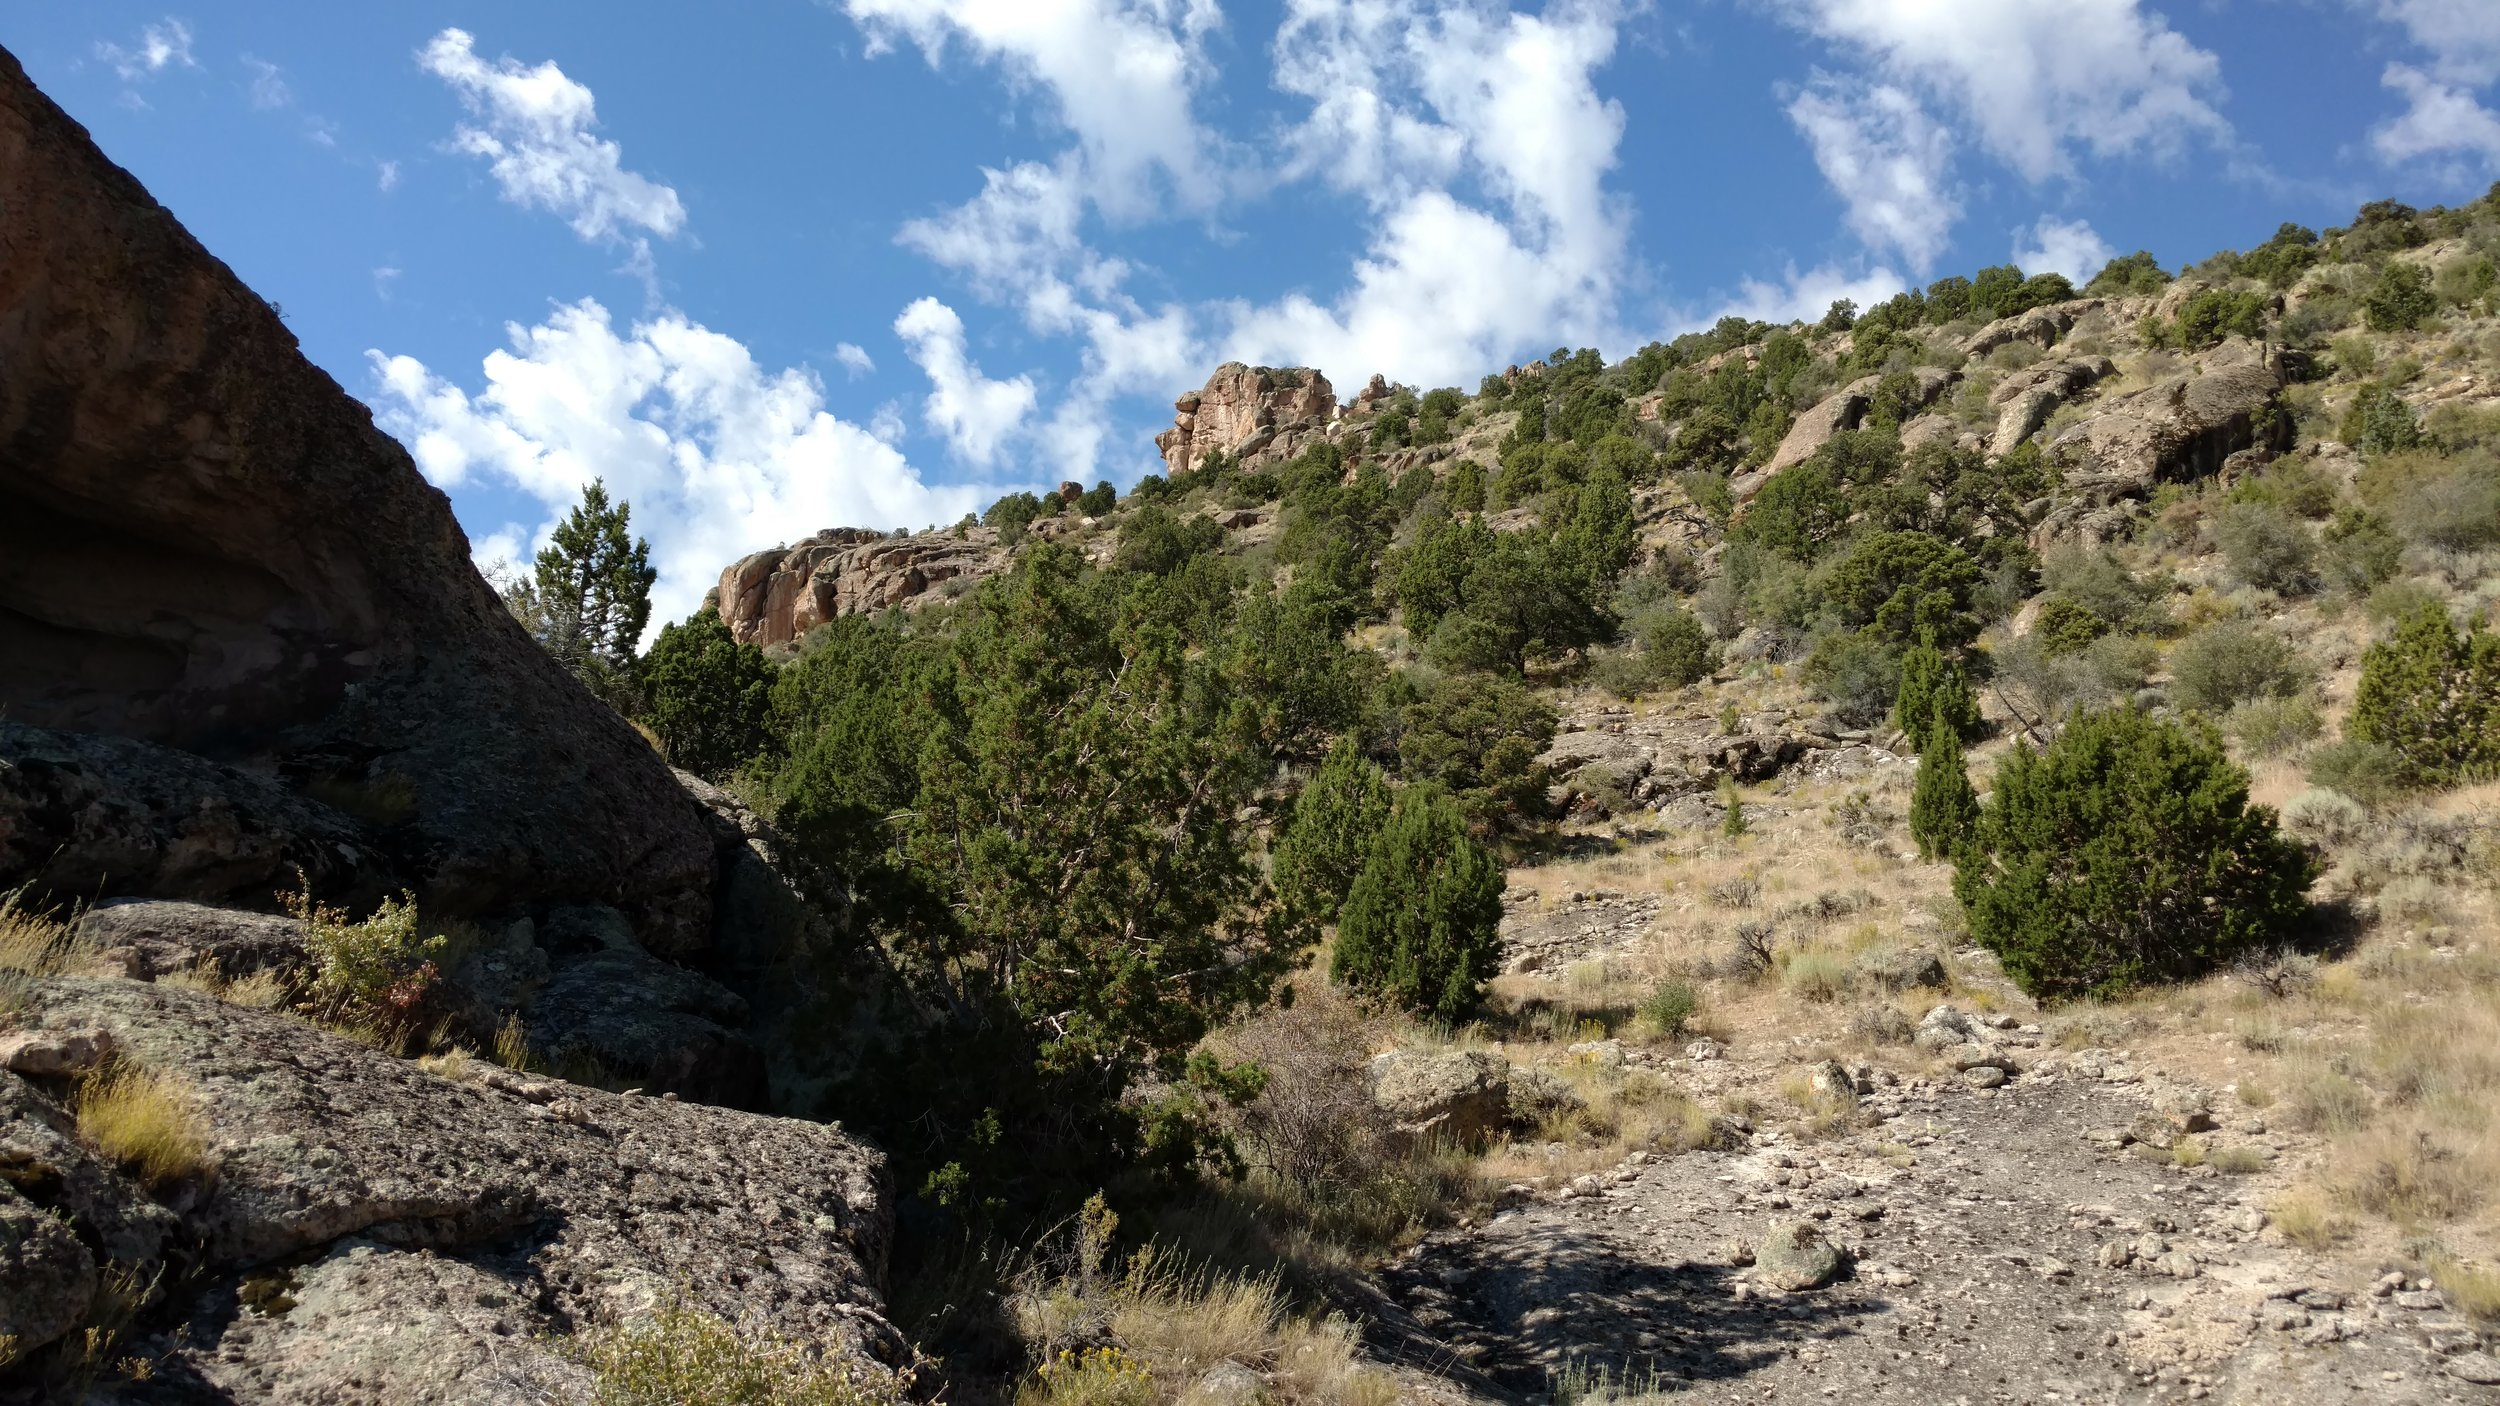 Trail view of the massive rock outcropping with reasonable access to the top